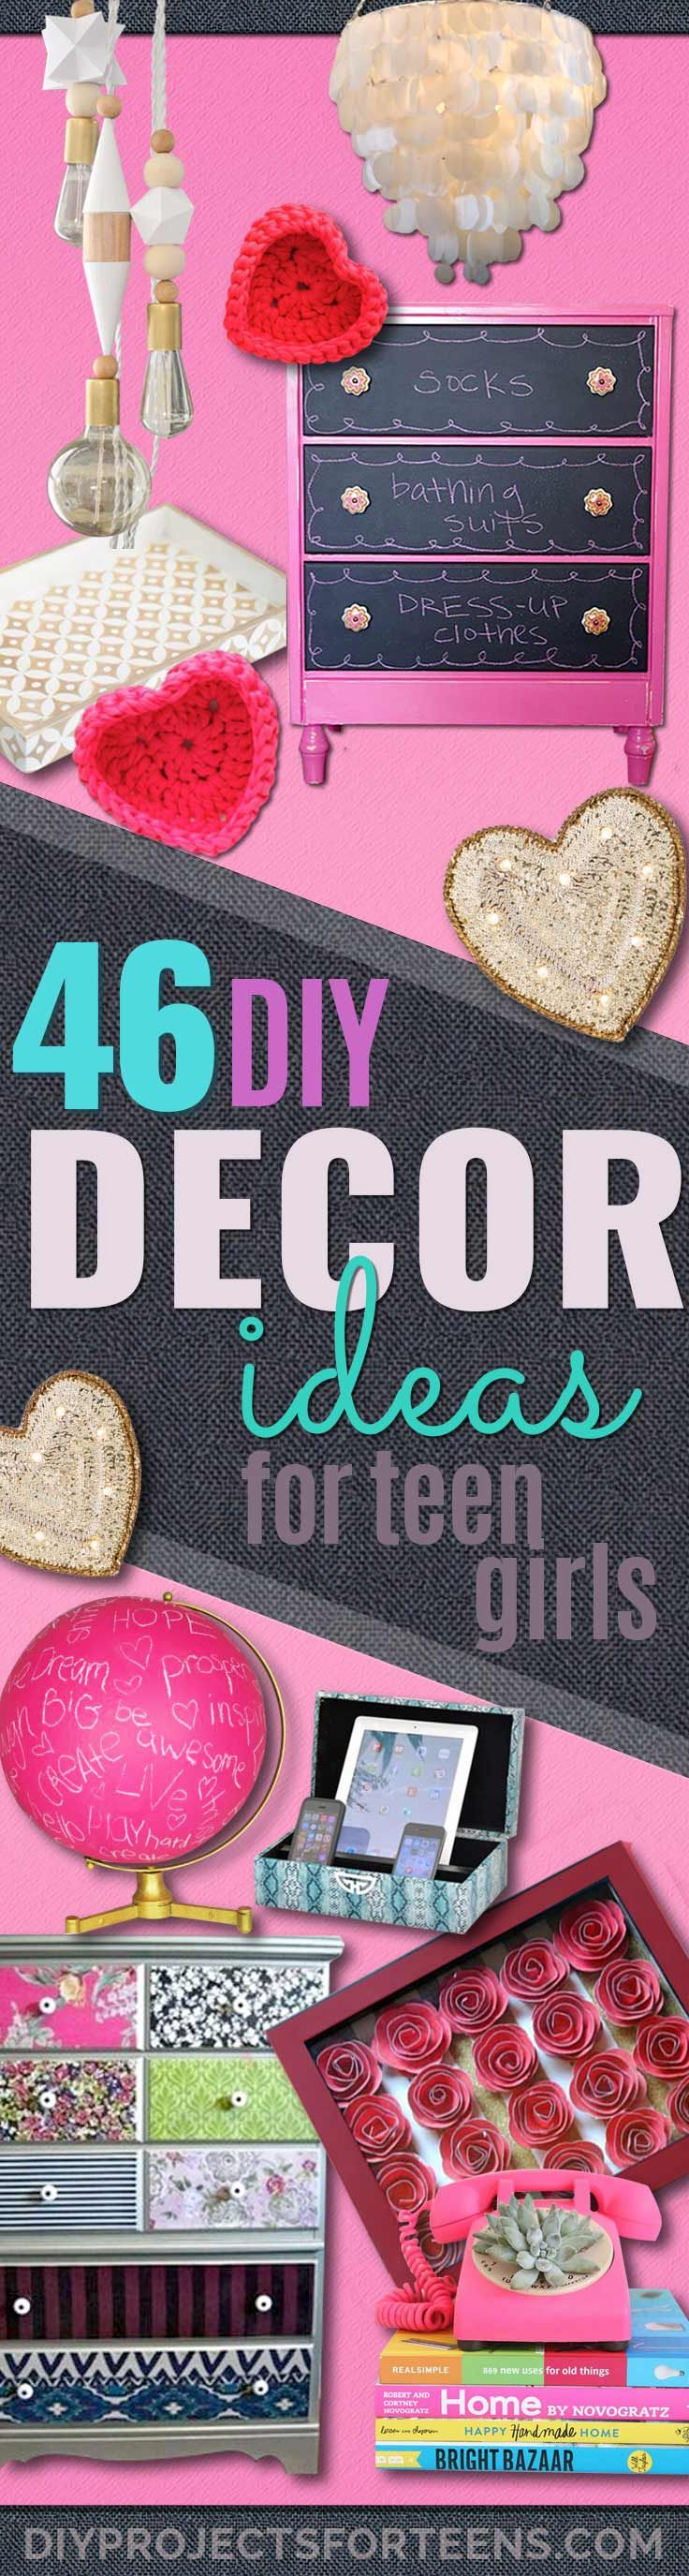 Charming DIY Teen Room Decor Ideas For Girls | Fun Crafts And Decor For Tweens | Cool